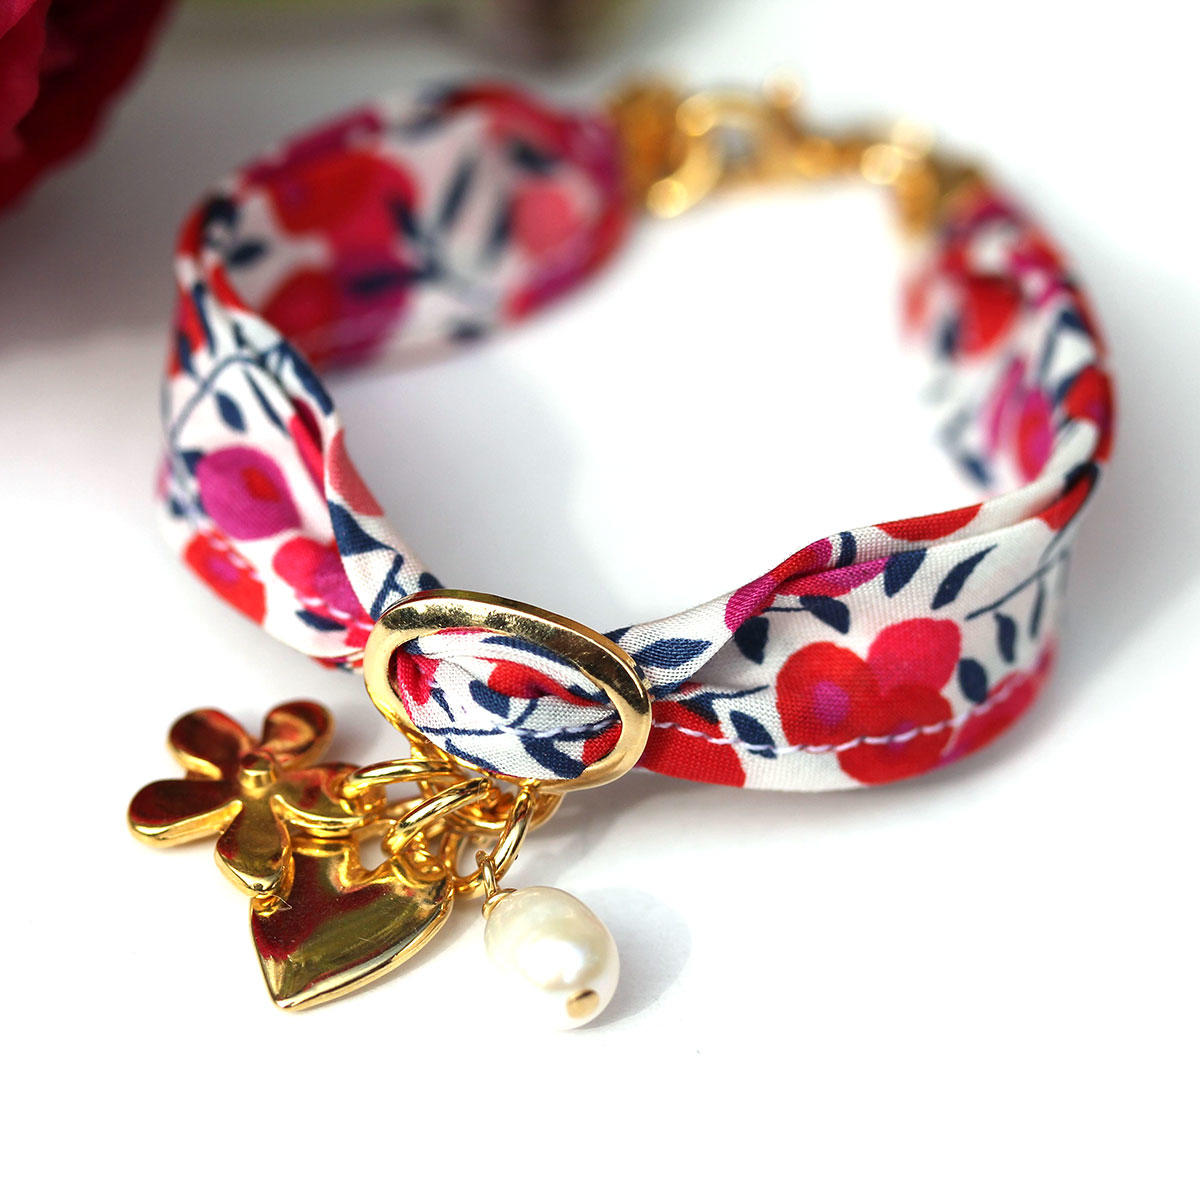 Liberty Wiltshire Bracelet with Gold Charms